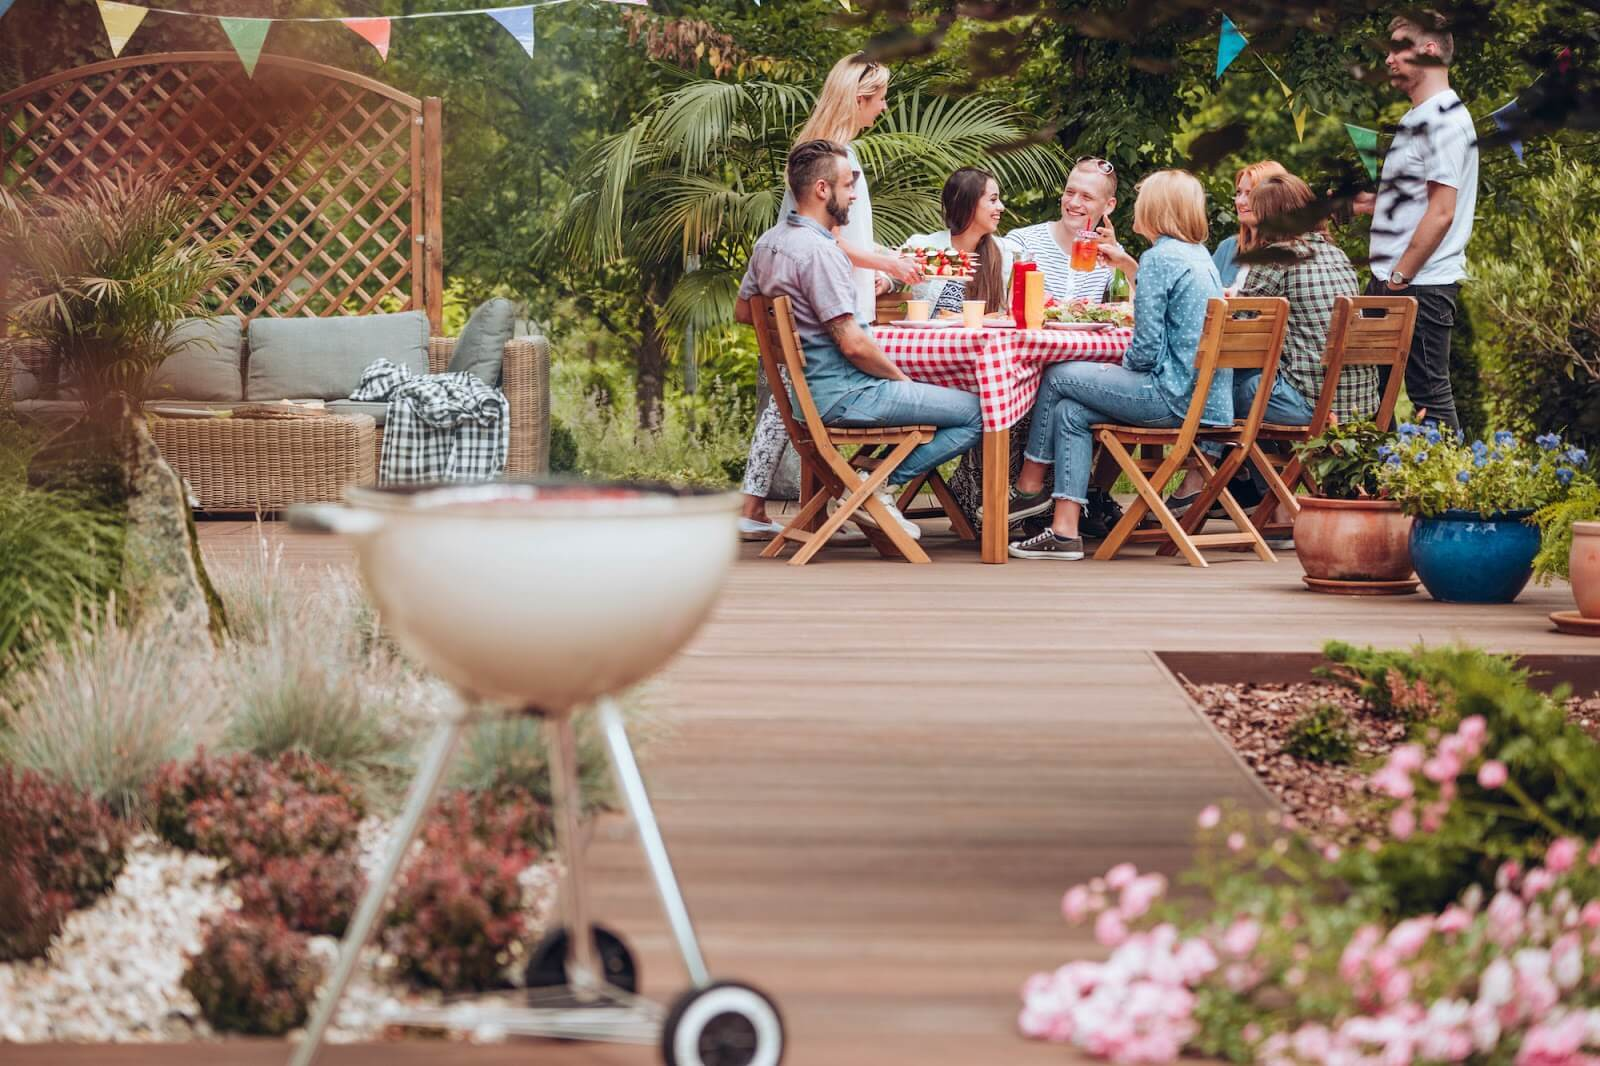 Group together on a patio